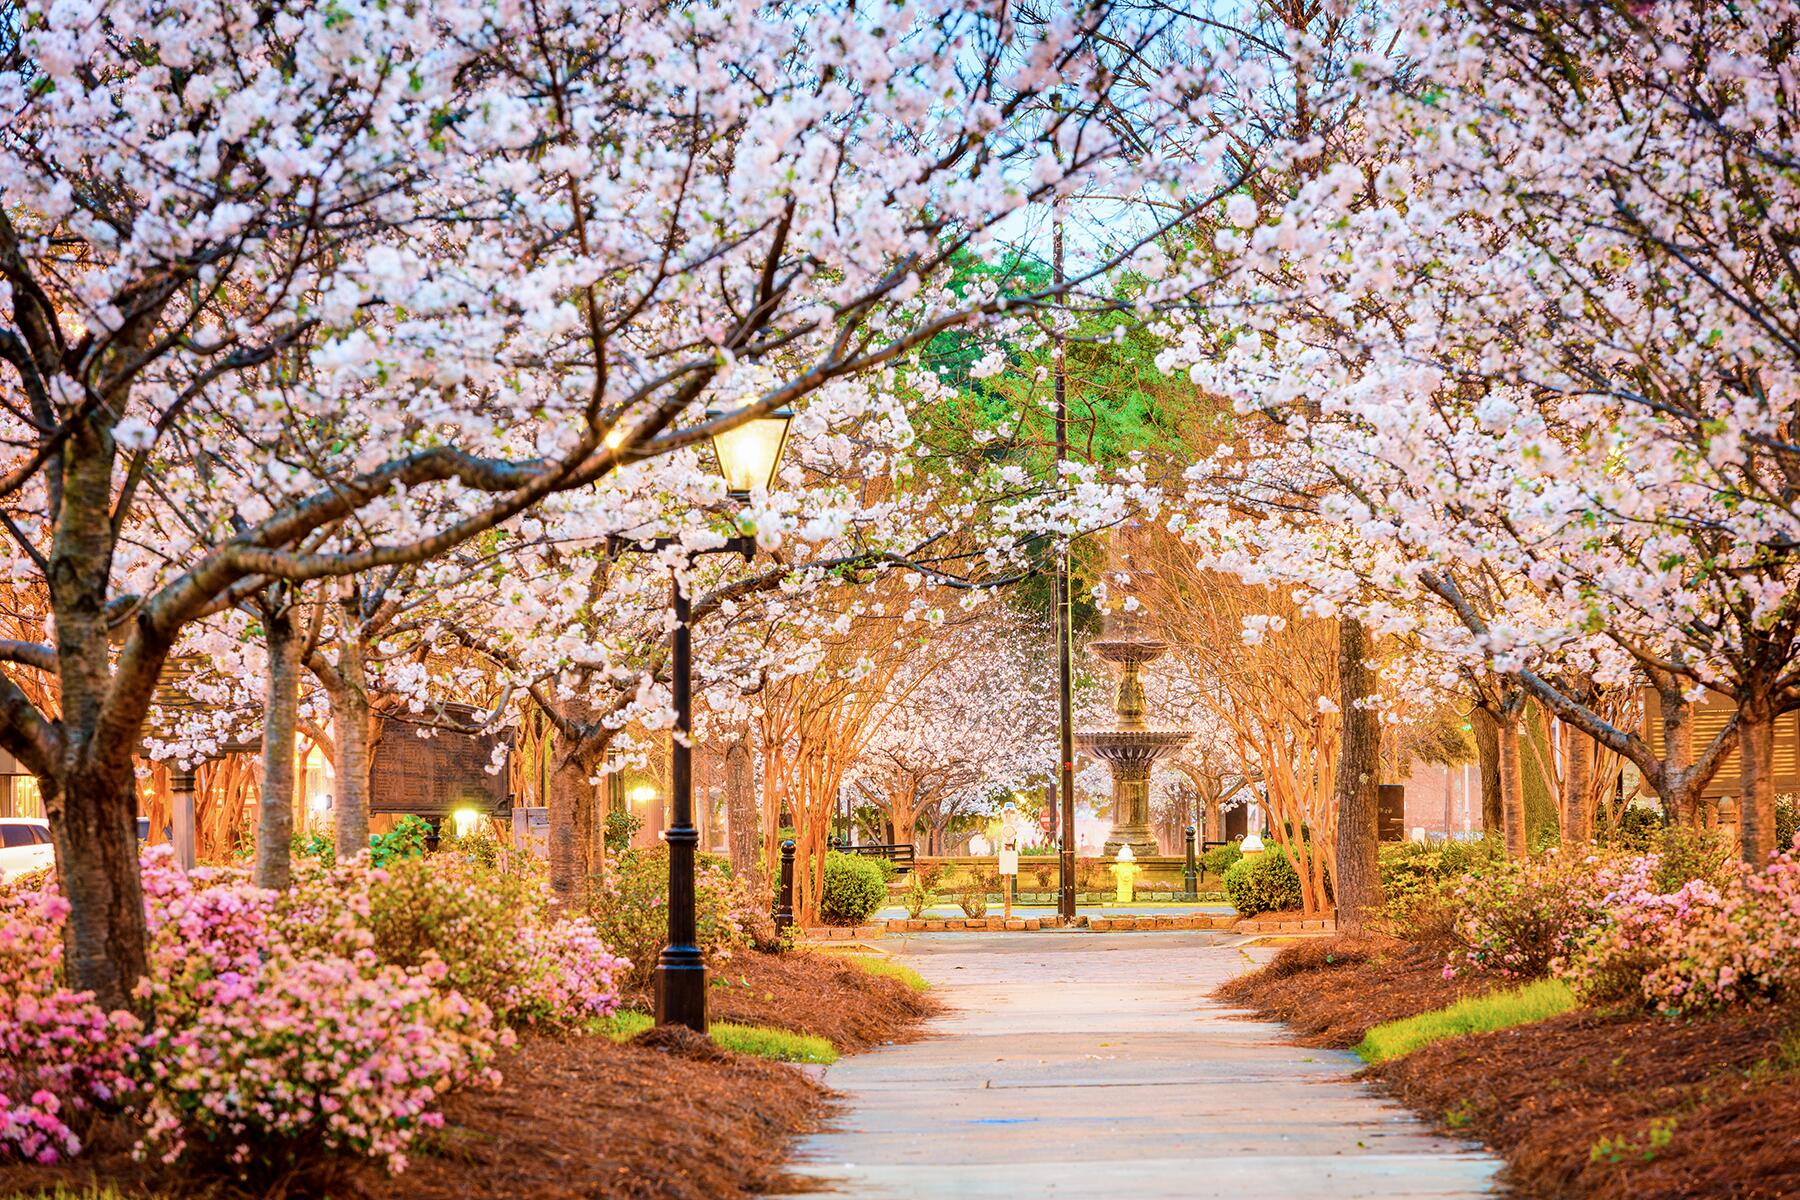 One of the World's Best Cherry Blossom Festivals Is in This Small U.S. Town